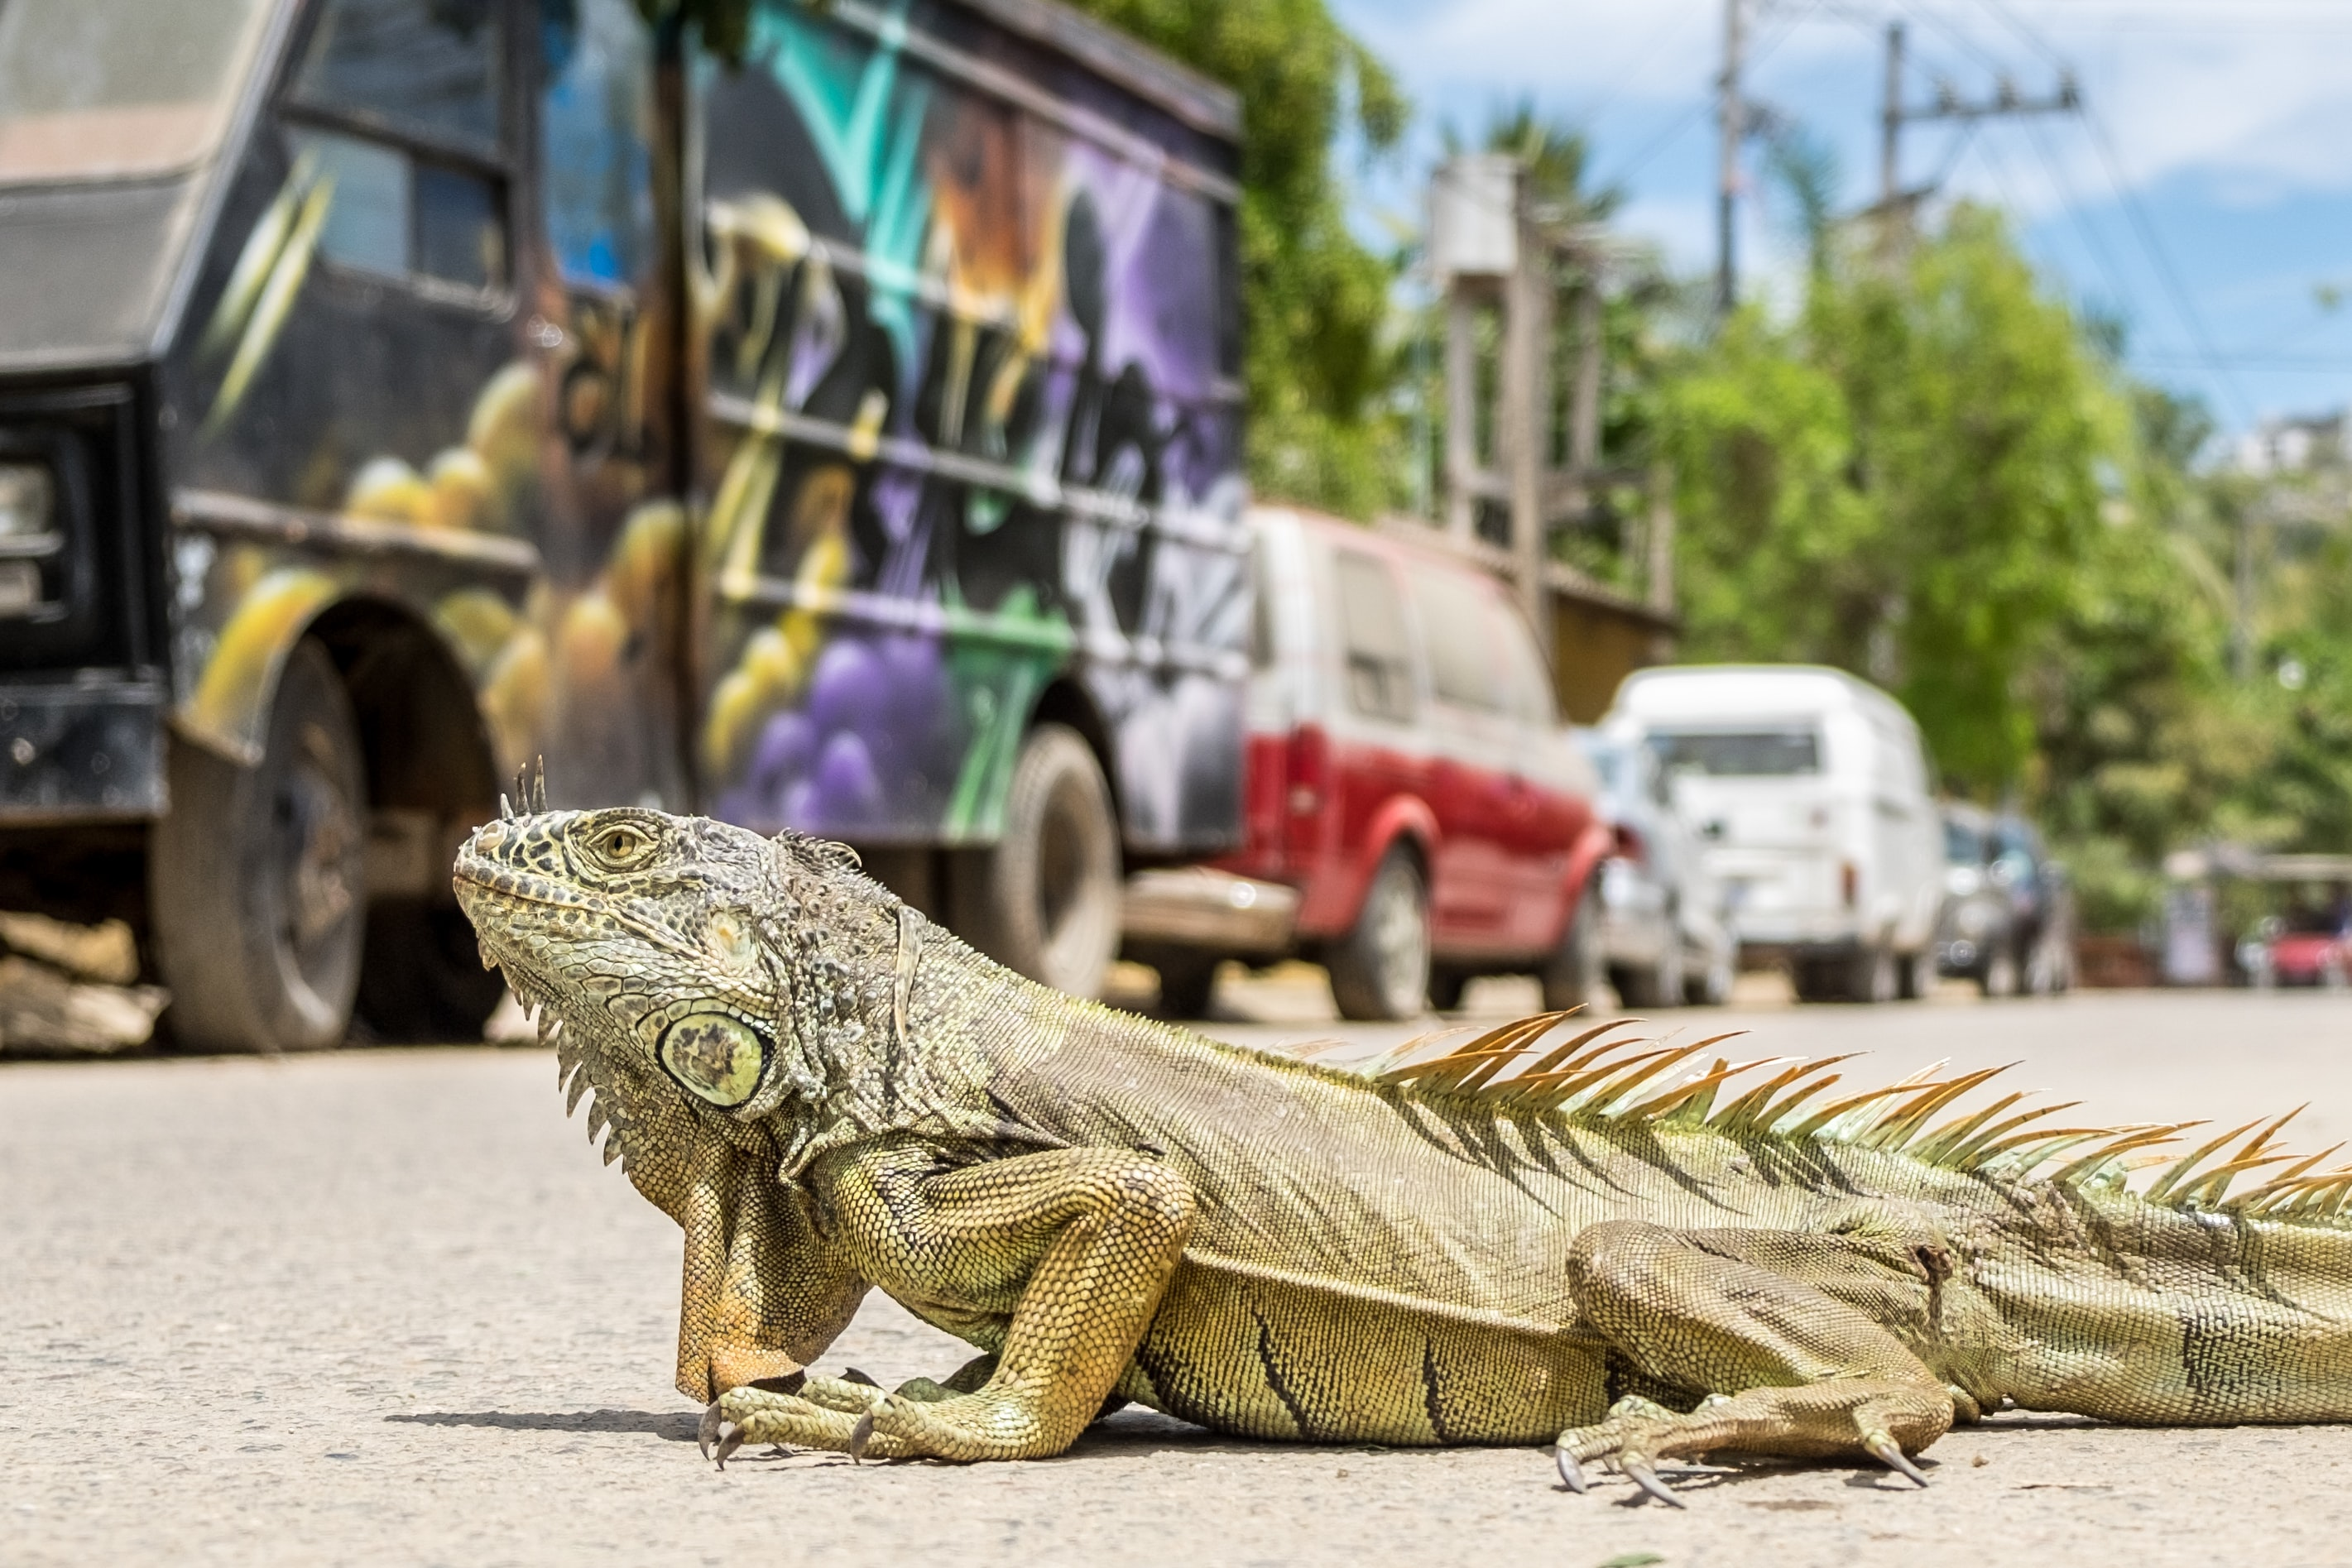 A large iguana on a road on a sunny day